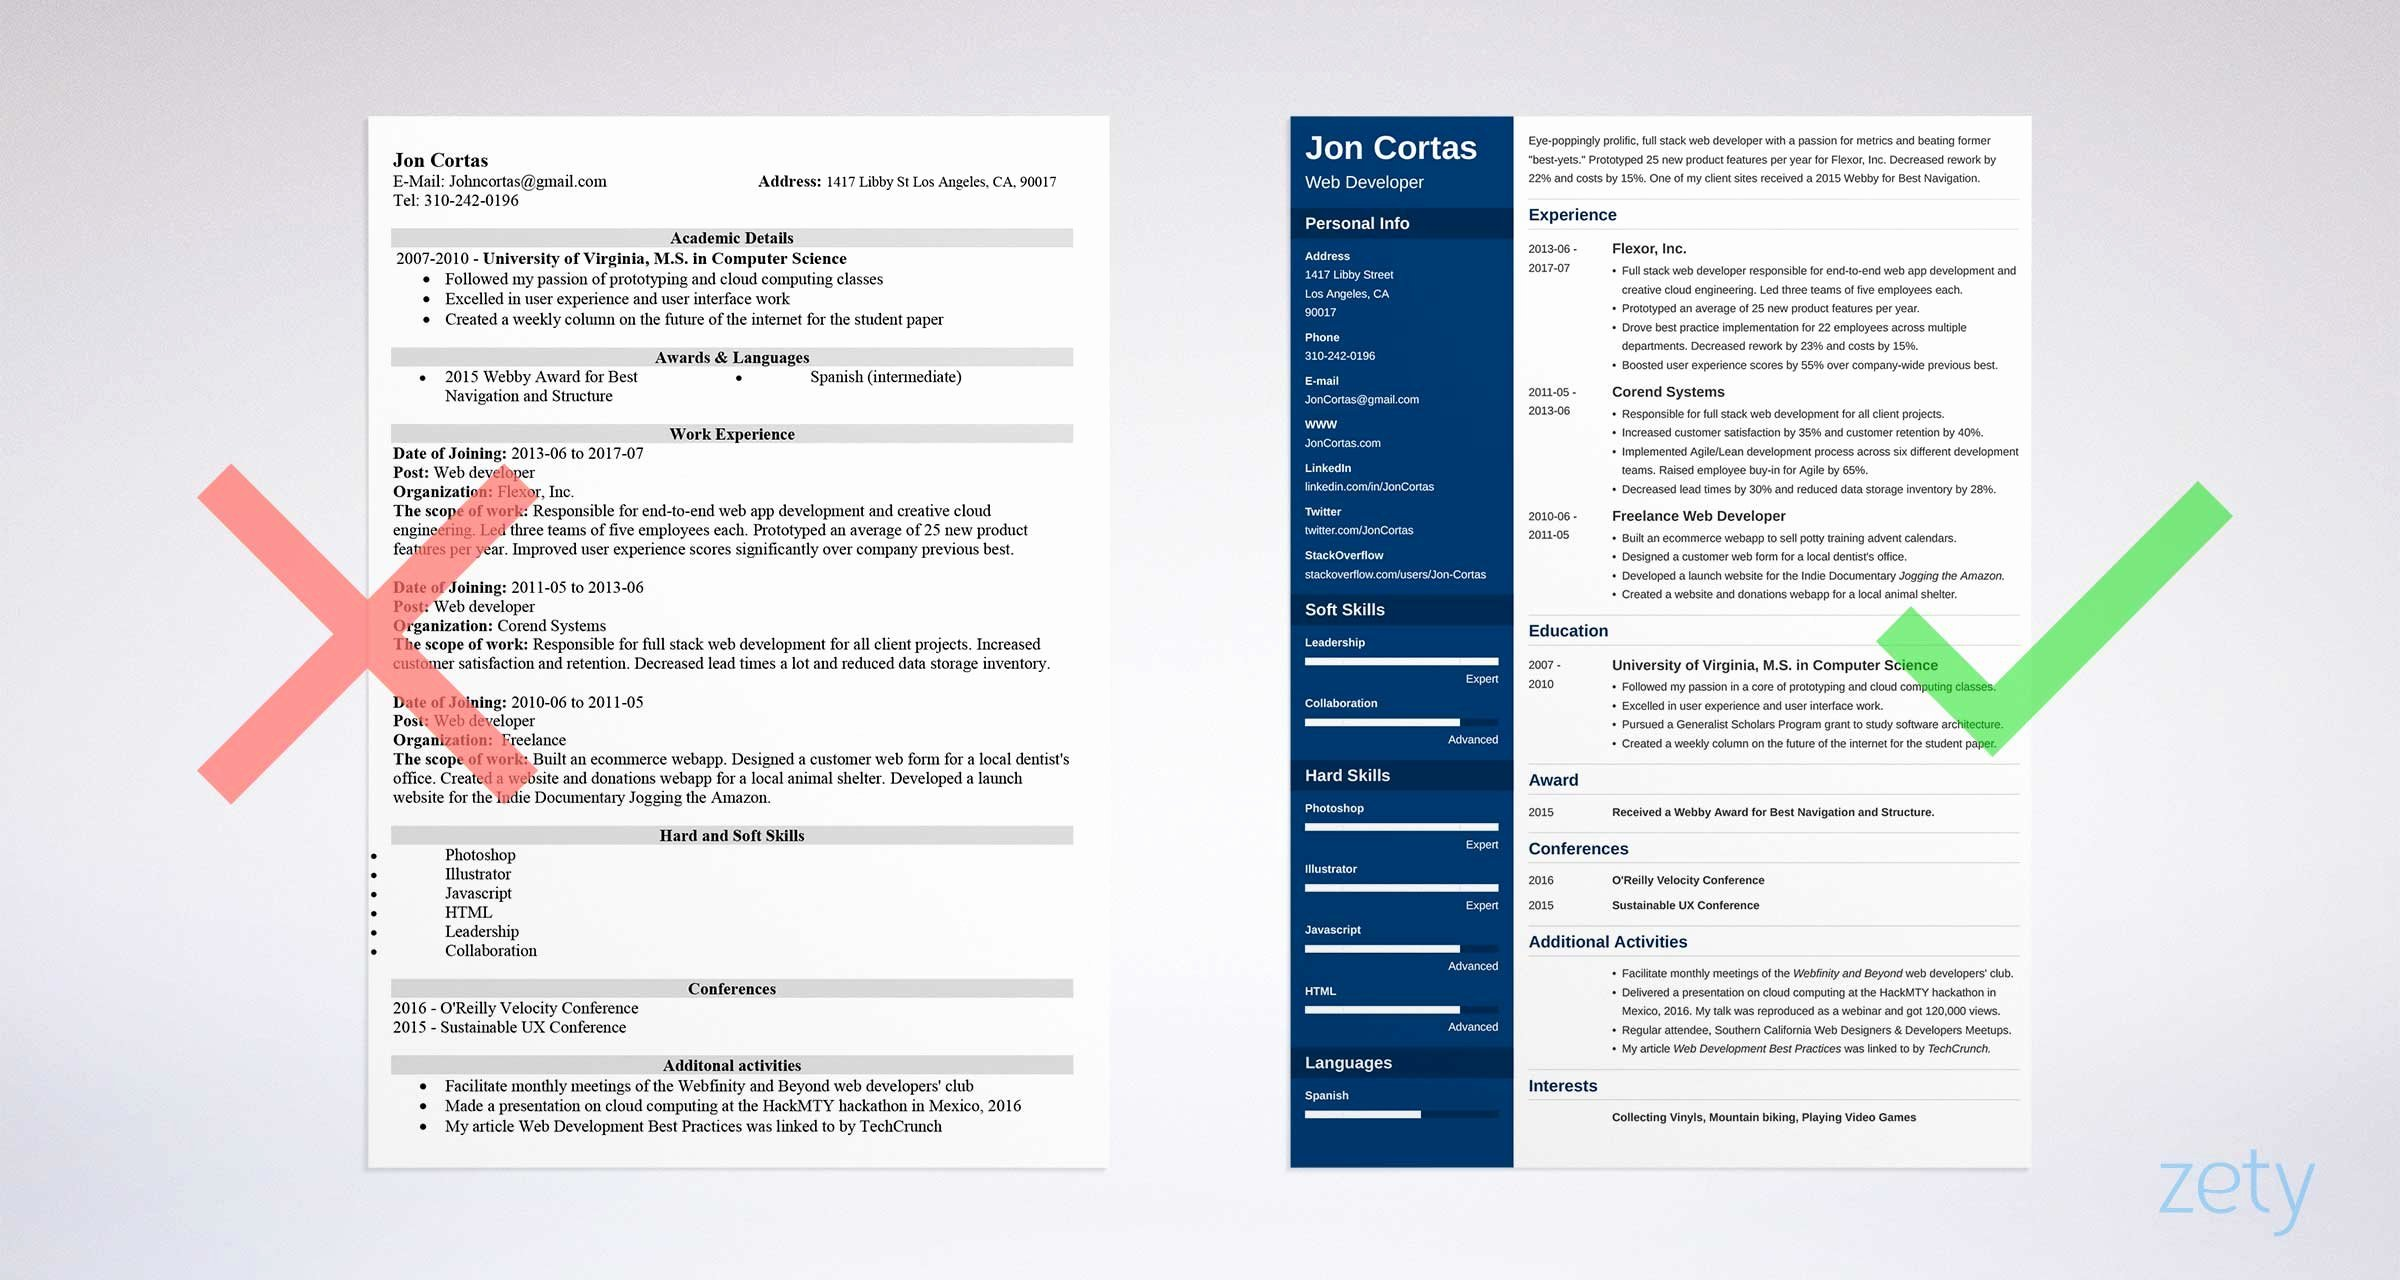 Resume Templates Free Word Beautiful 15 Resume Templates for Word Free to Download